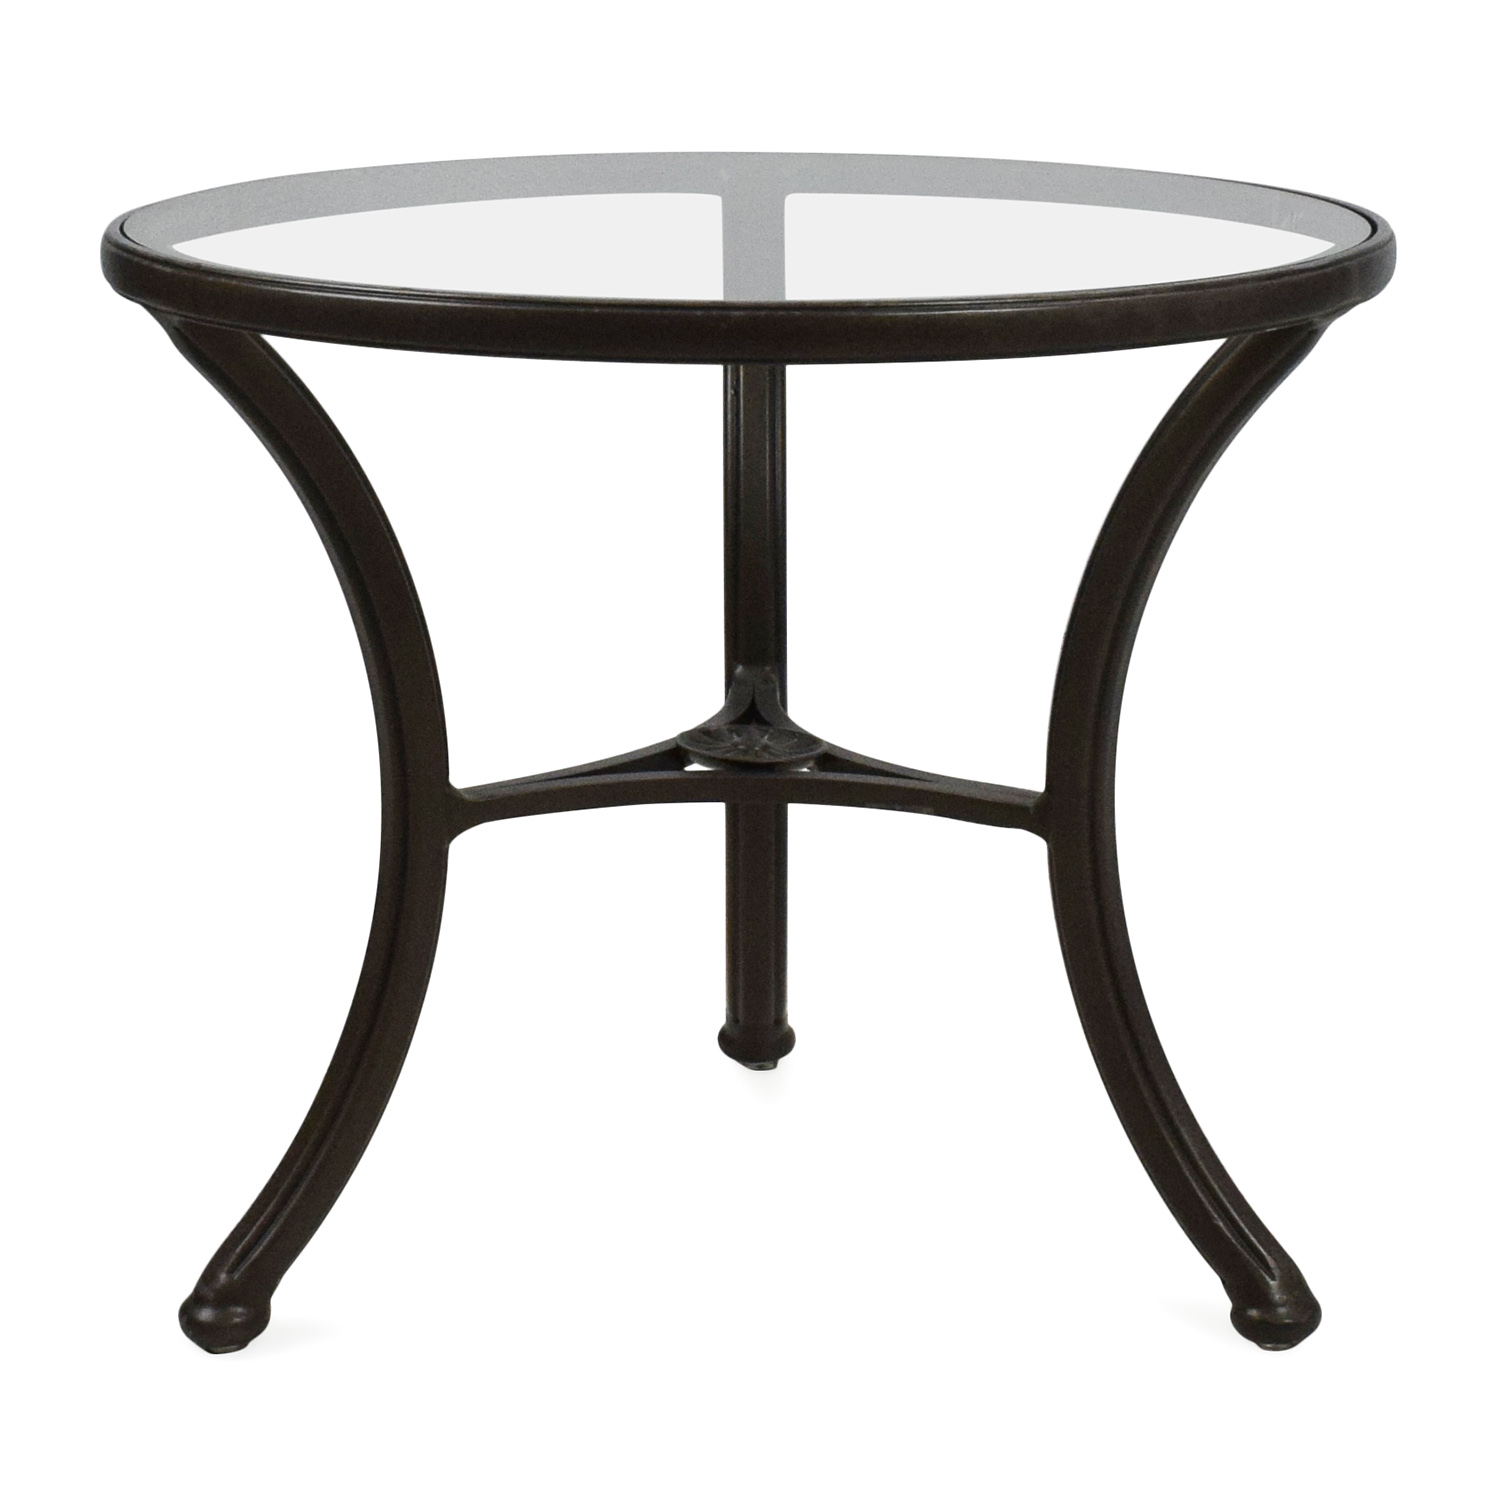 off ethan allen glass side table tables end legendary furniture consignment accent colors for brown couch white console with storage steampunk classic touch massage sheffield